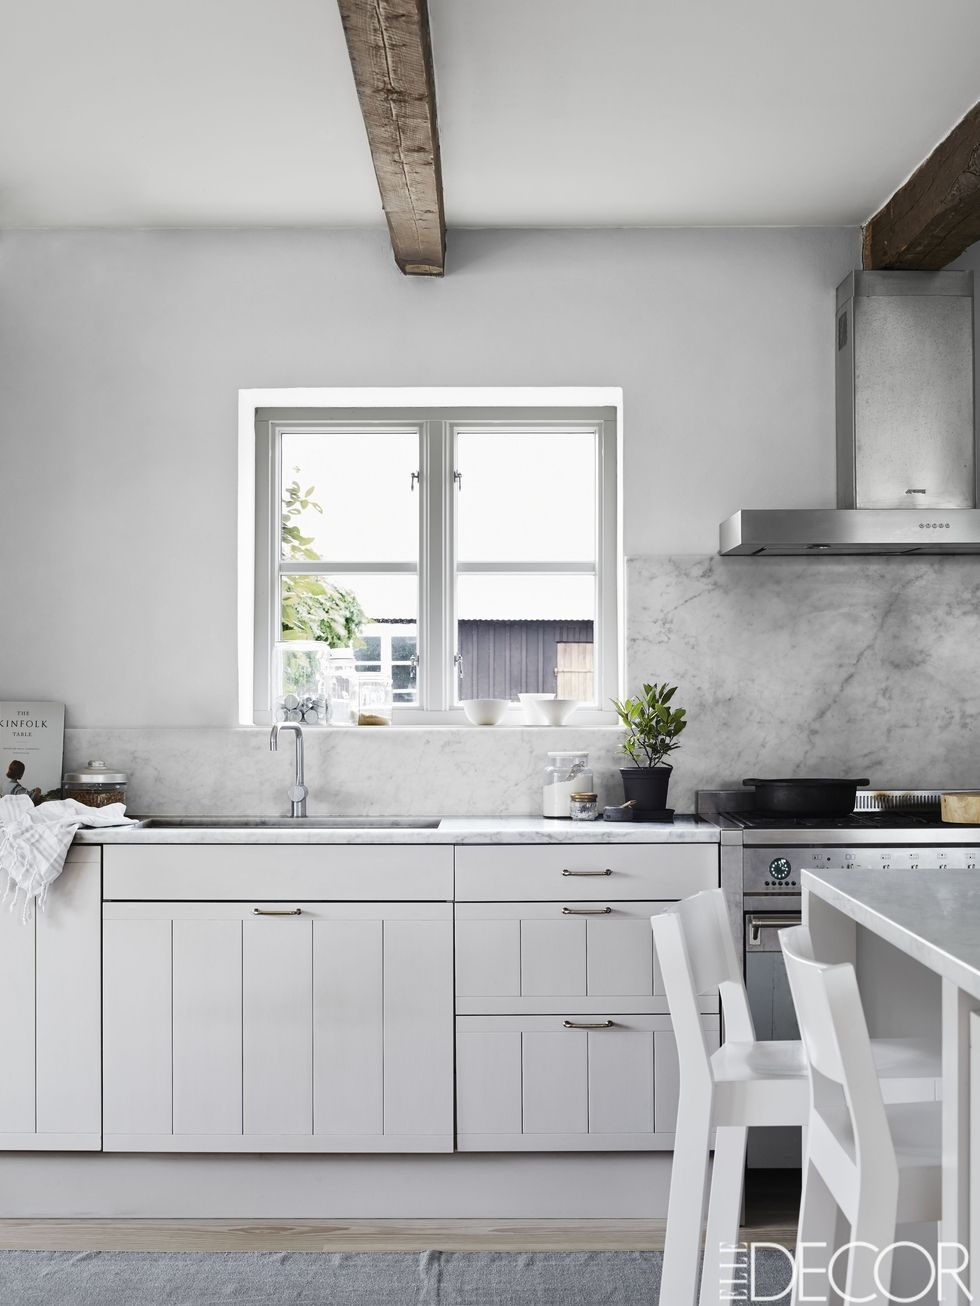 35 Best White Kitchens Design Ideas  Pictures Of White Kitchen Amazing White Kitchen Design Ideas Design Inspiration